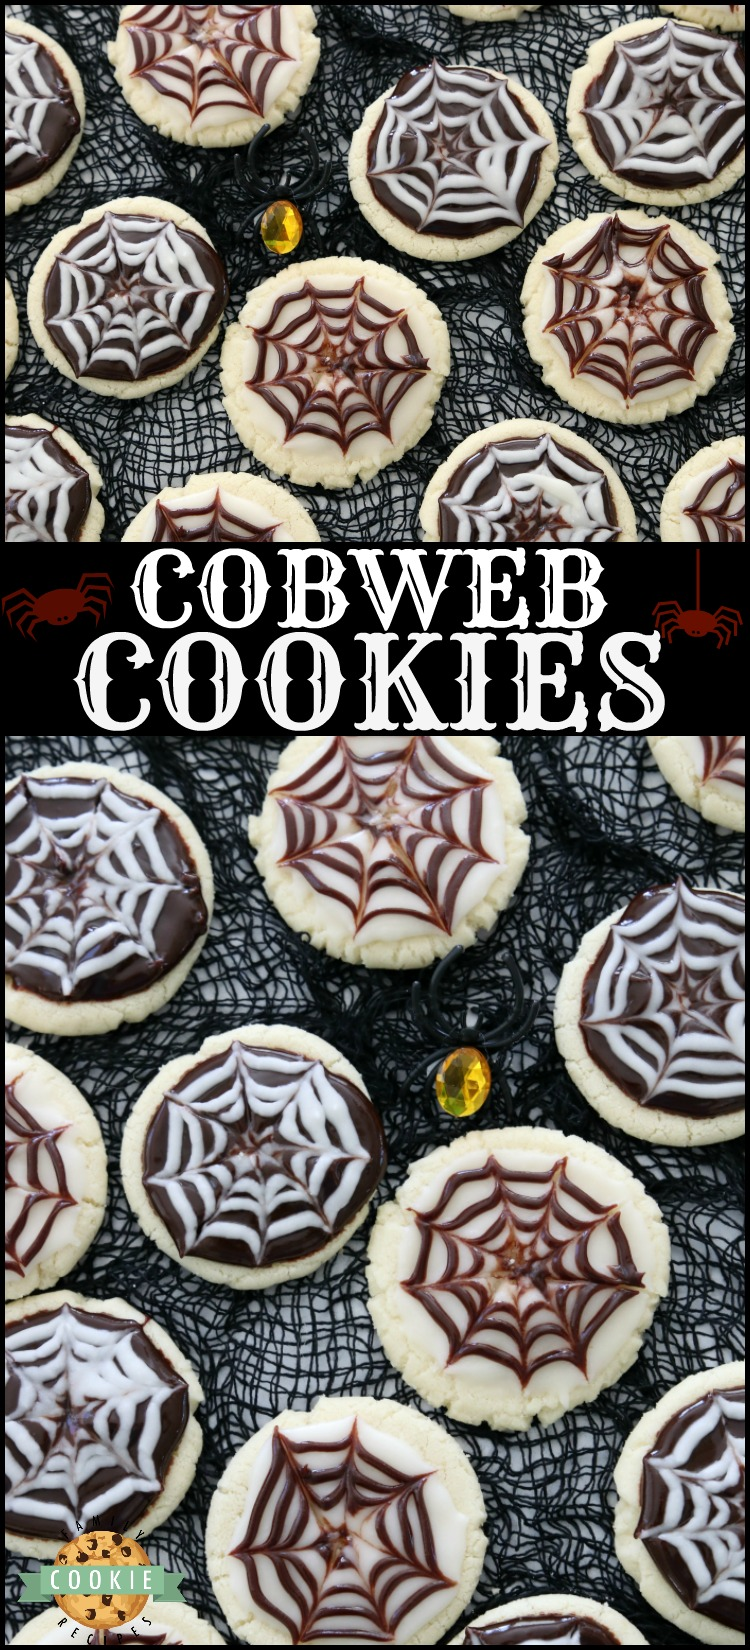 Halloween Cobweb Cookies are spectacularly spooky and completely delicious! Sugar cookies topped with chocolate & vanilla icing- no coloring! Quick & easy spider web design made in seconds. Perfect Halloween treats! via @familycookierecipes